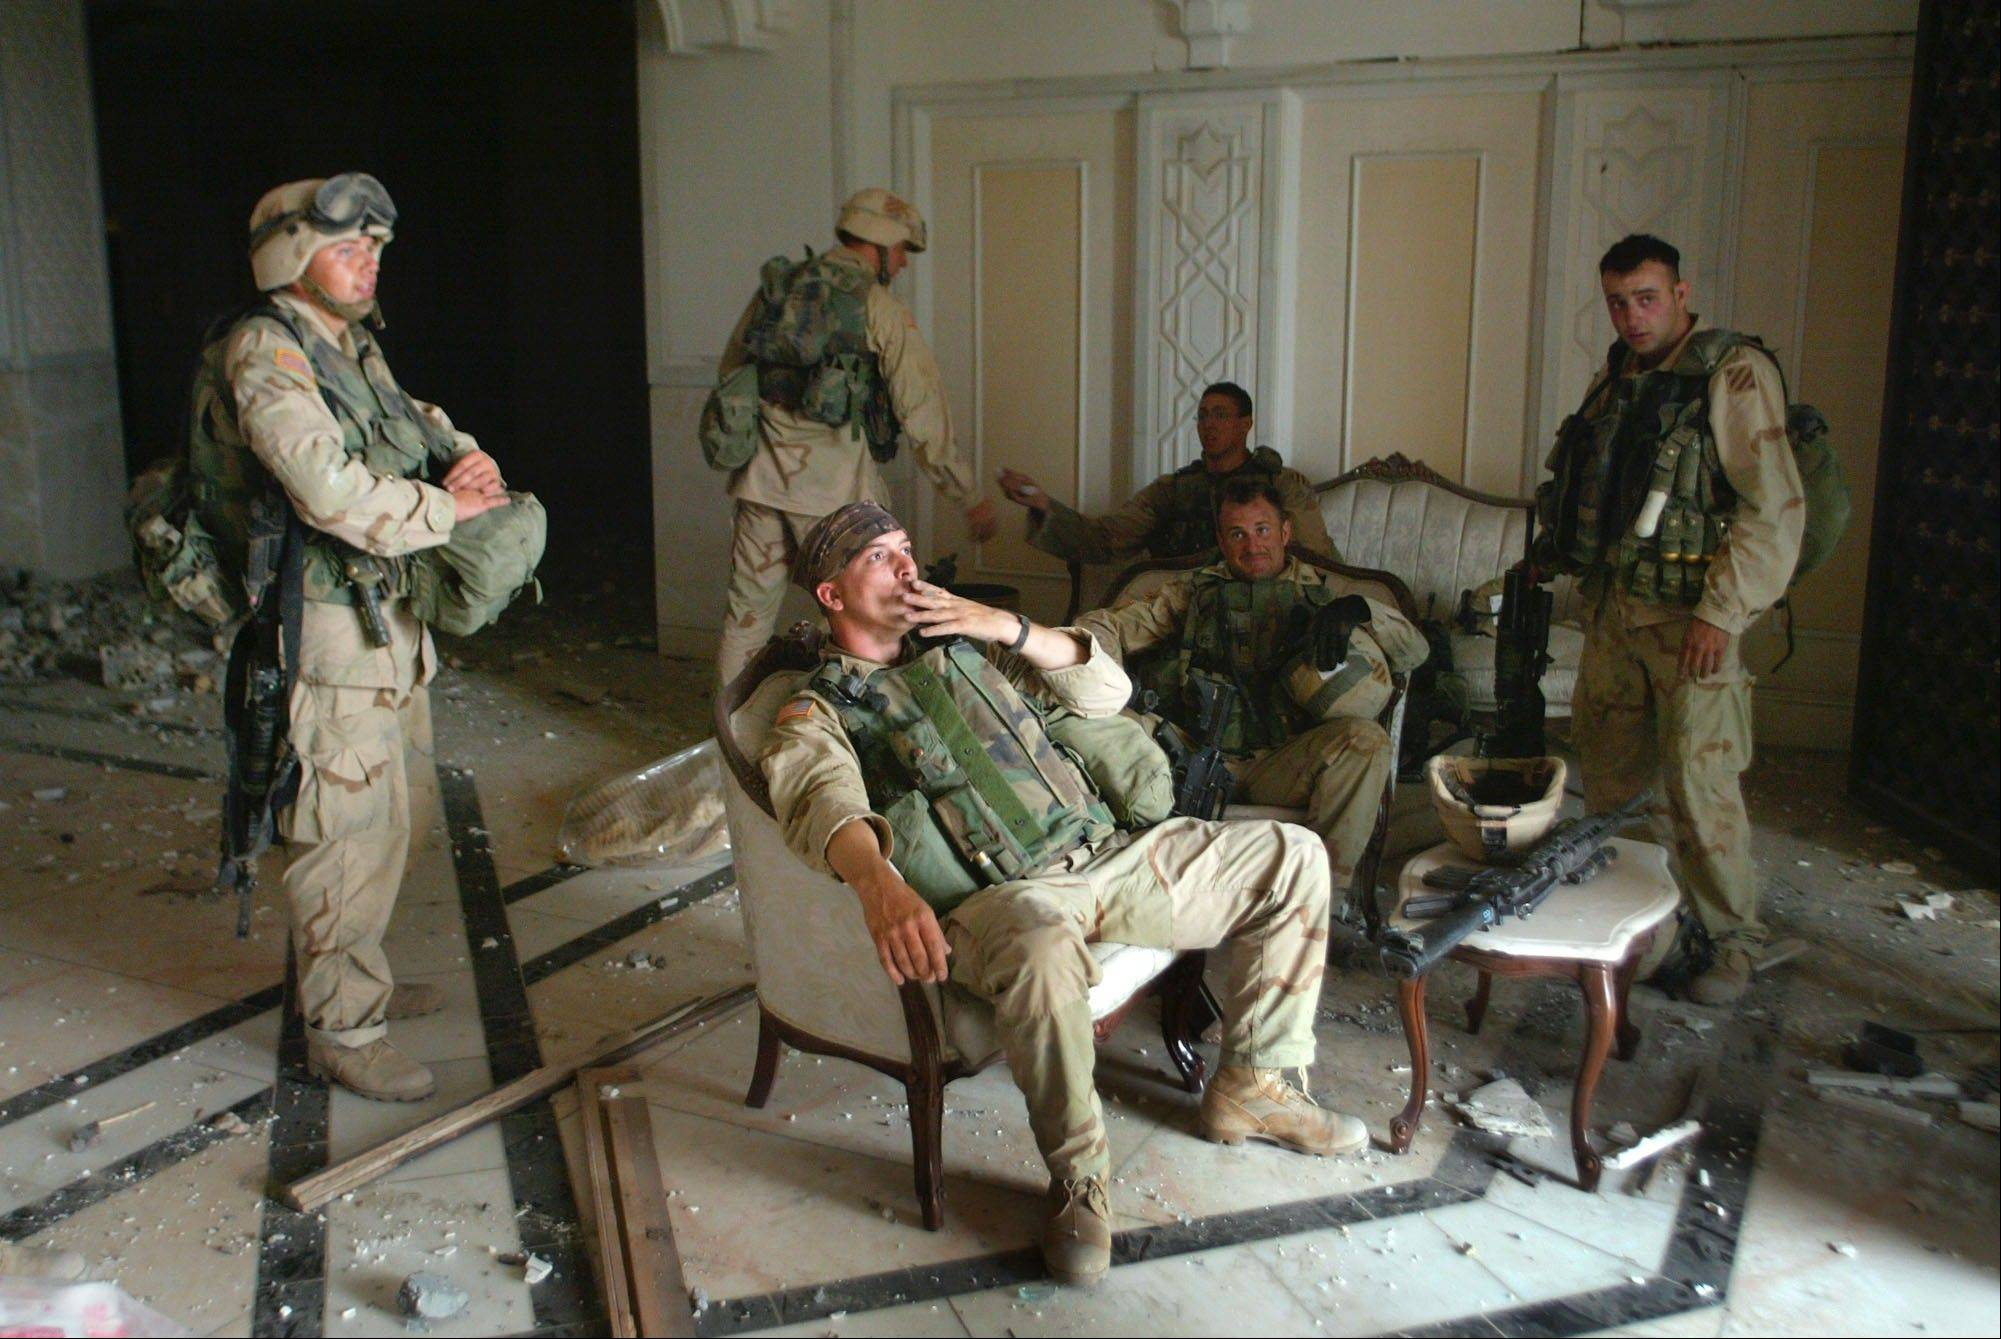 FILE - U.S. Army Stf. Sgt. Chad Touchett, center, relaxes with comrades from A Company, 3rd Battalion, 7th Infantry Regiment, after a search of one of Saddam Hussein's bomb-damaged palaces in Baghdad on Monday, April 7, 2003.